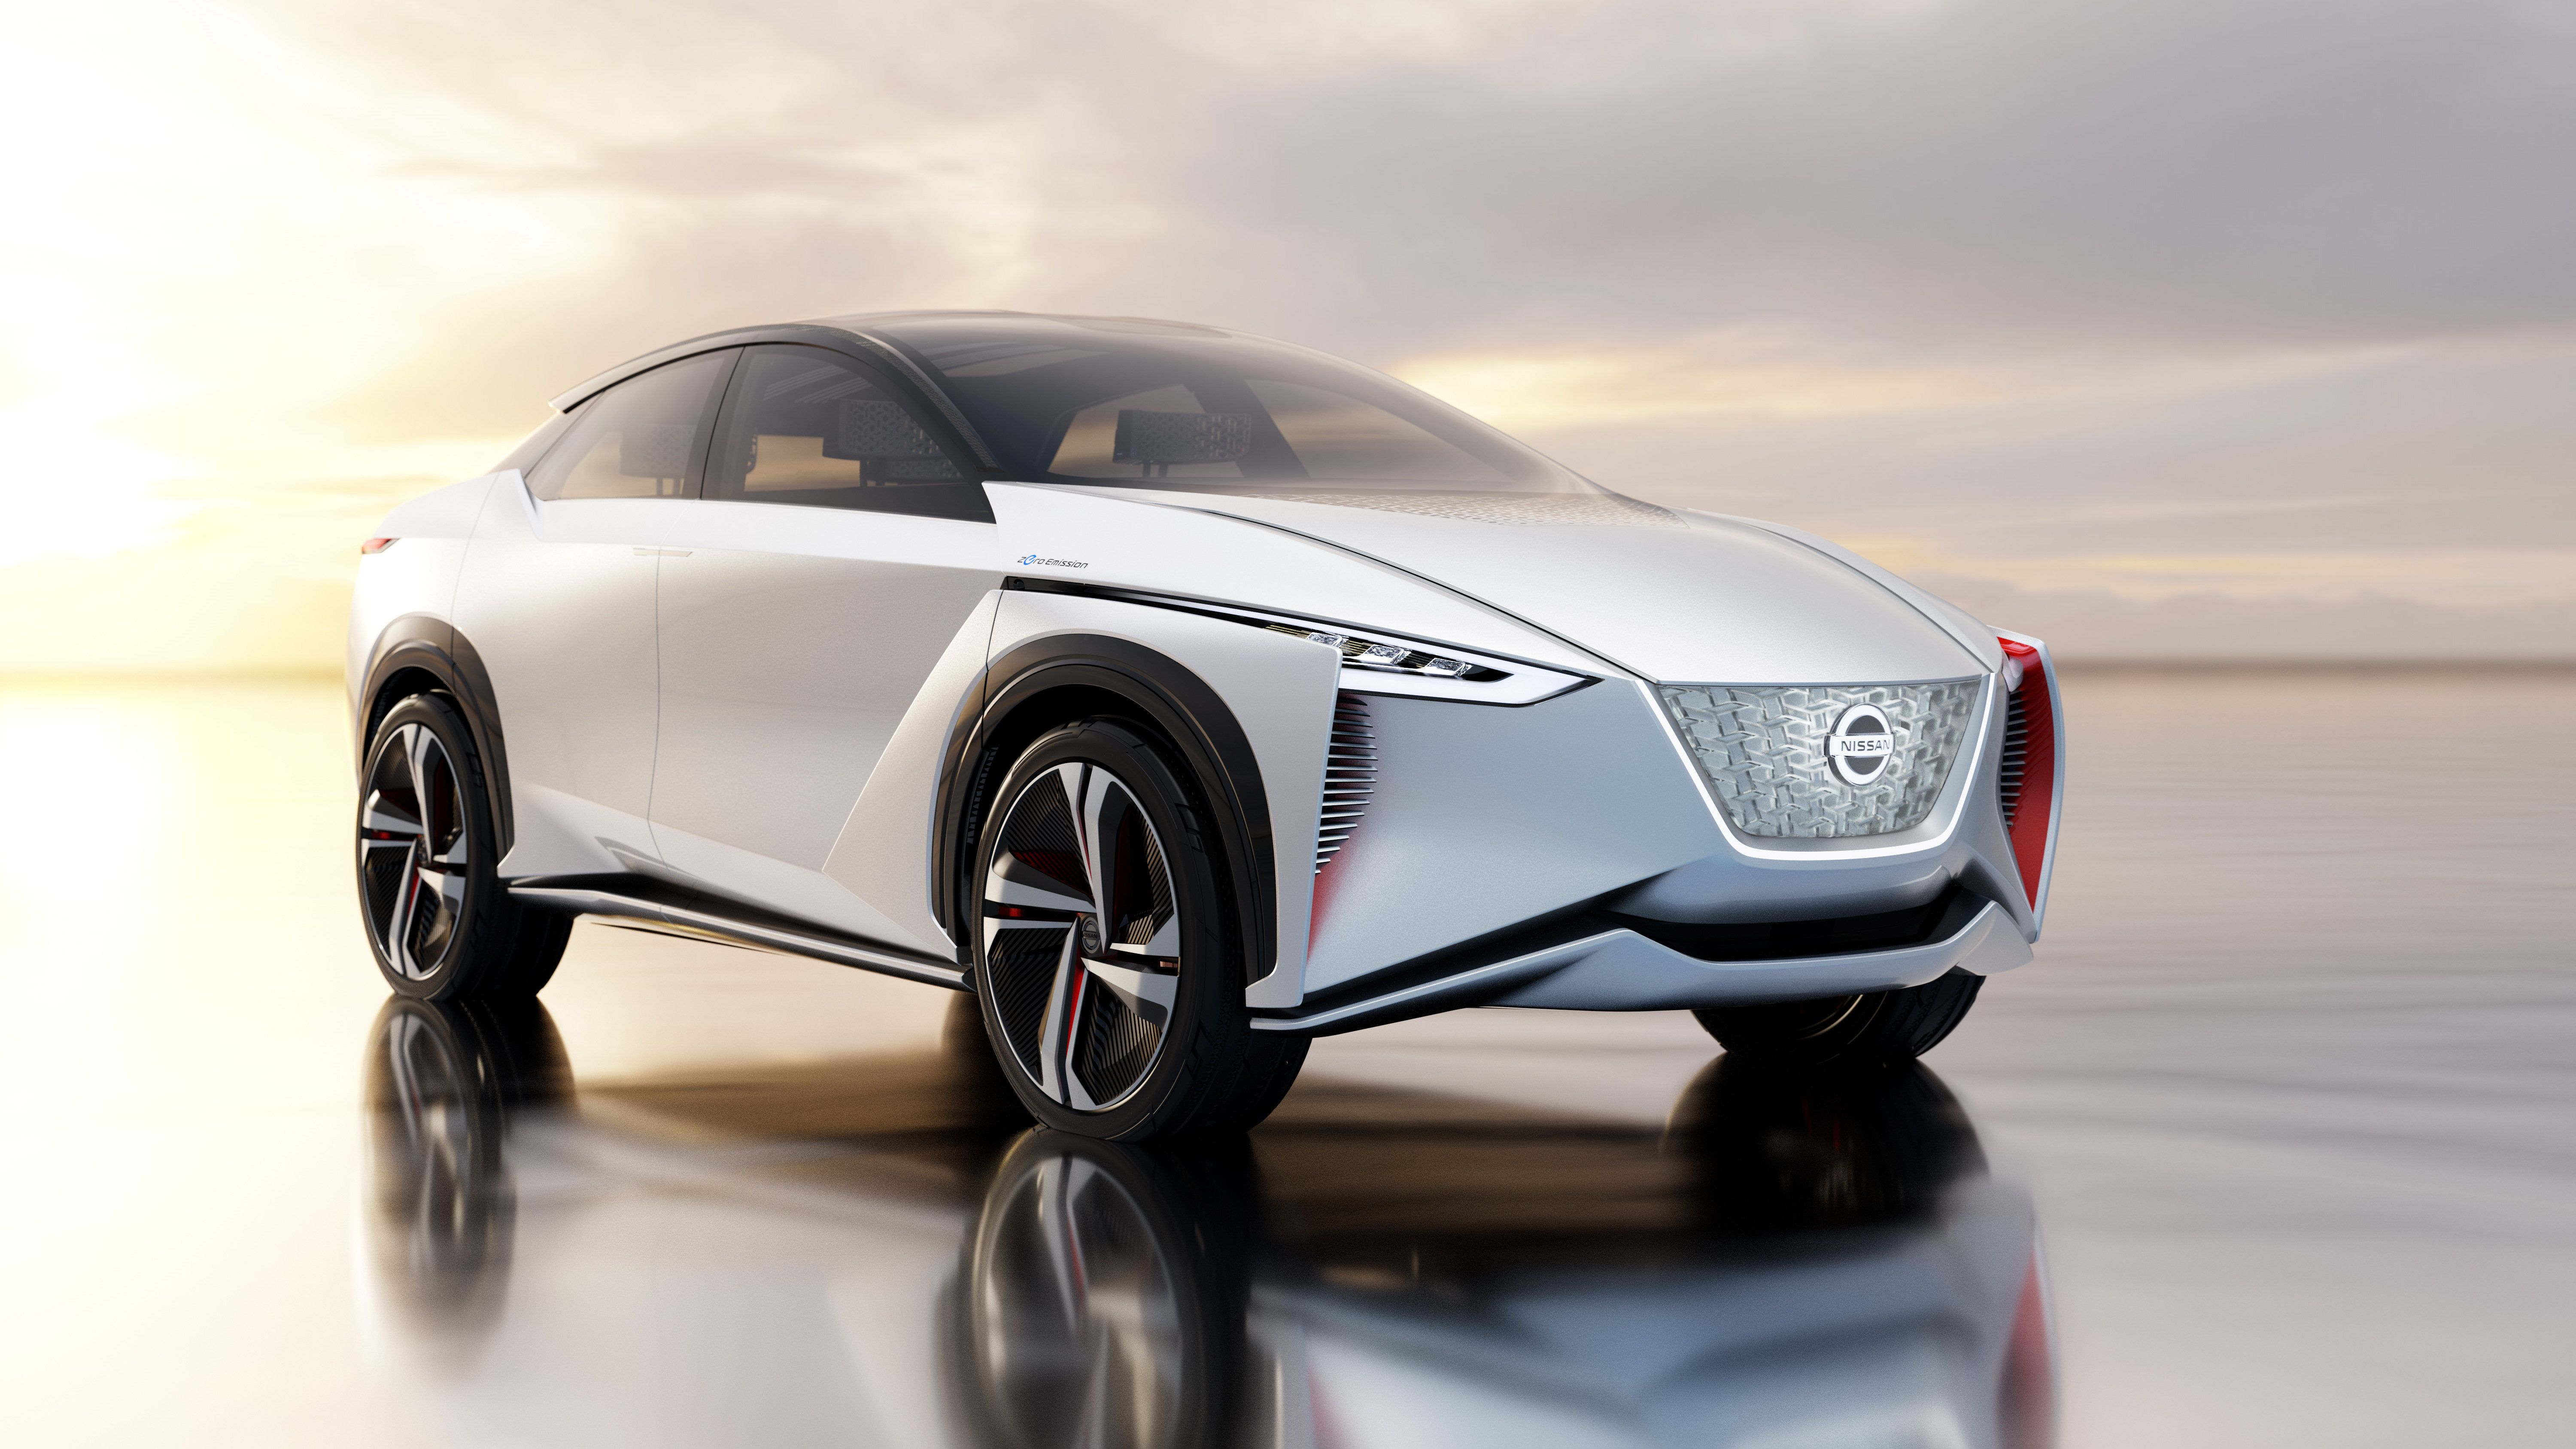 Listen To The Artificial Sound Nissan Has Created For Its 'Silent' Electric